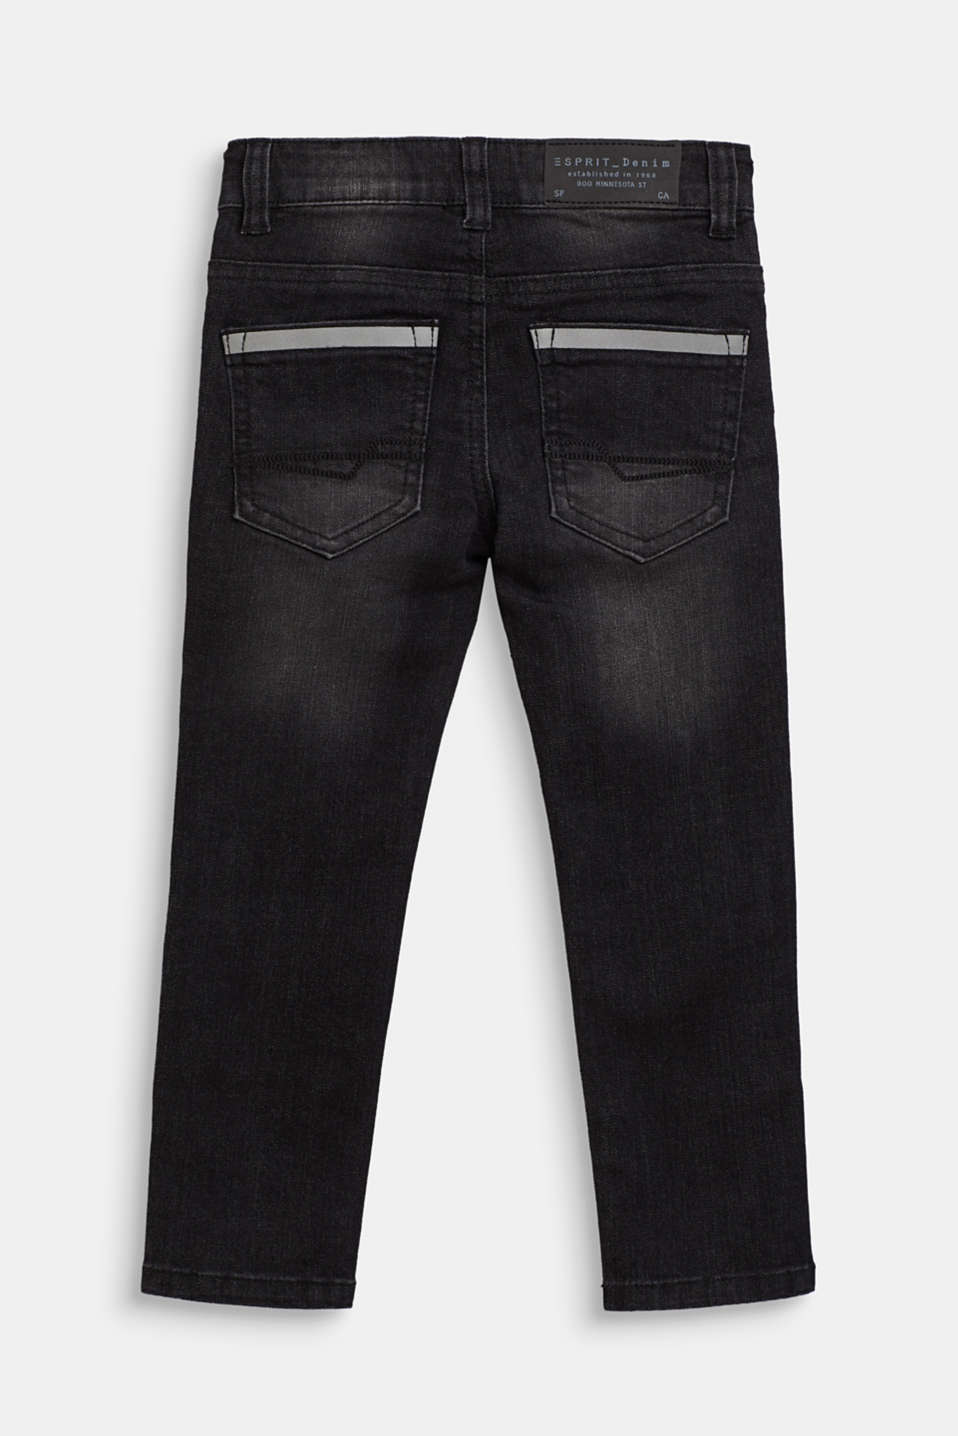 Pants denim, LCBLACK, detail image number 1